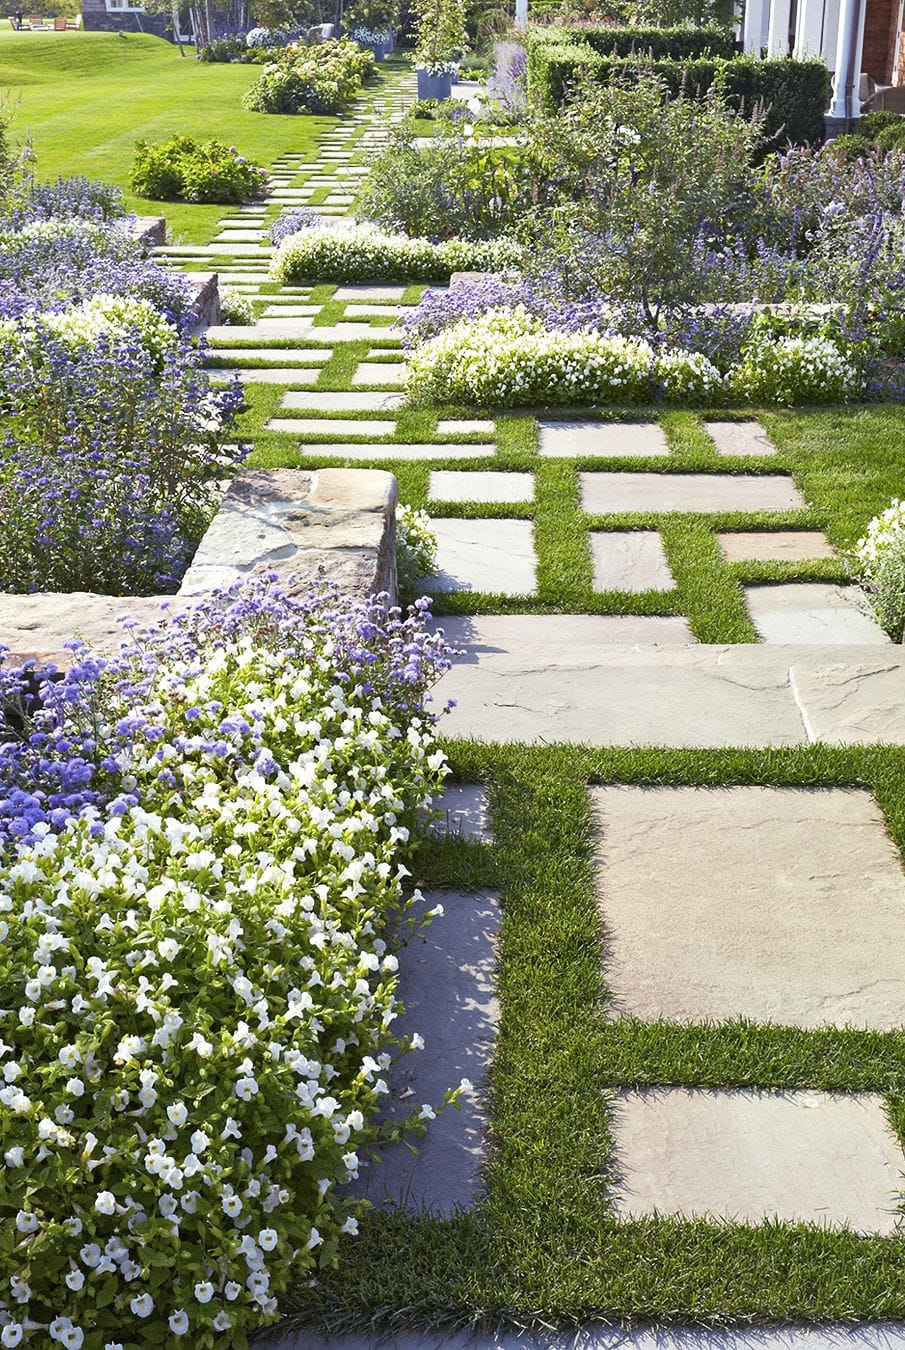 Best backyard landscaping ideas #22